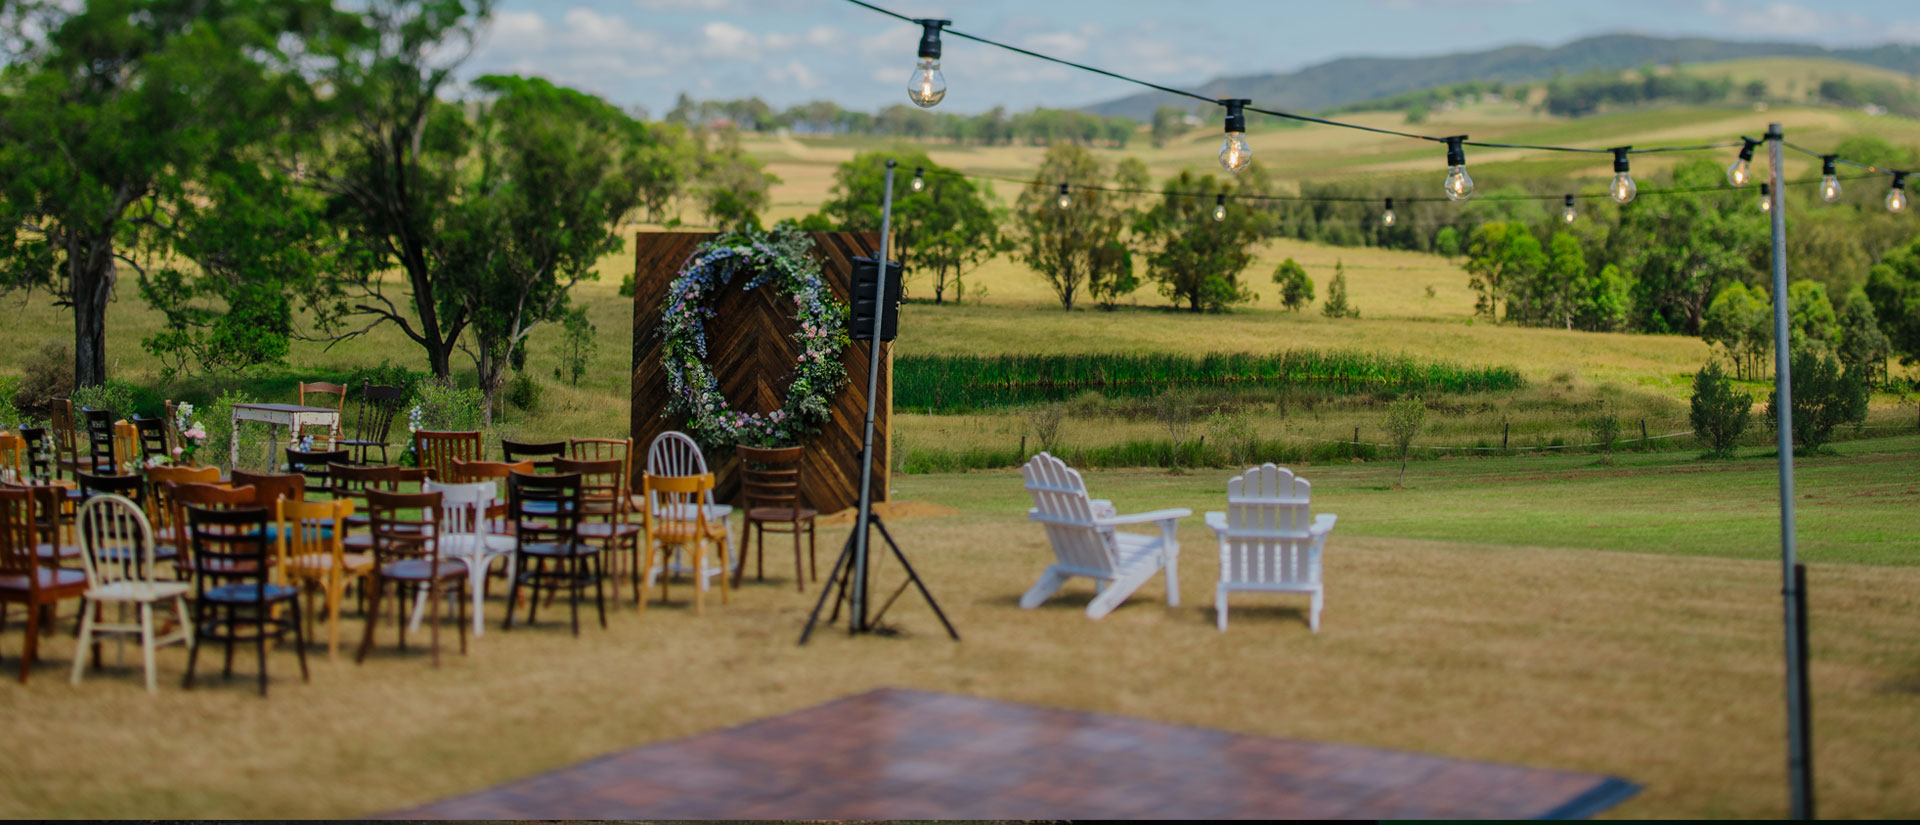 WEDDINGS & EVENTS AT HANGING TREE